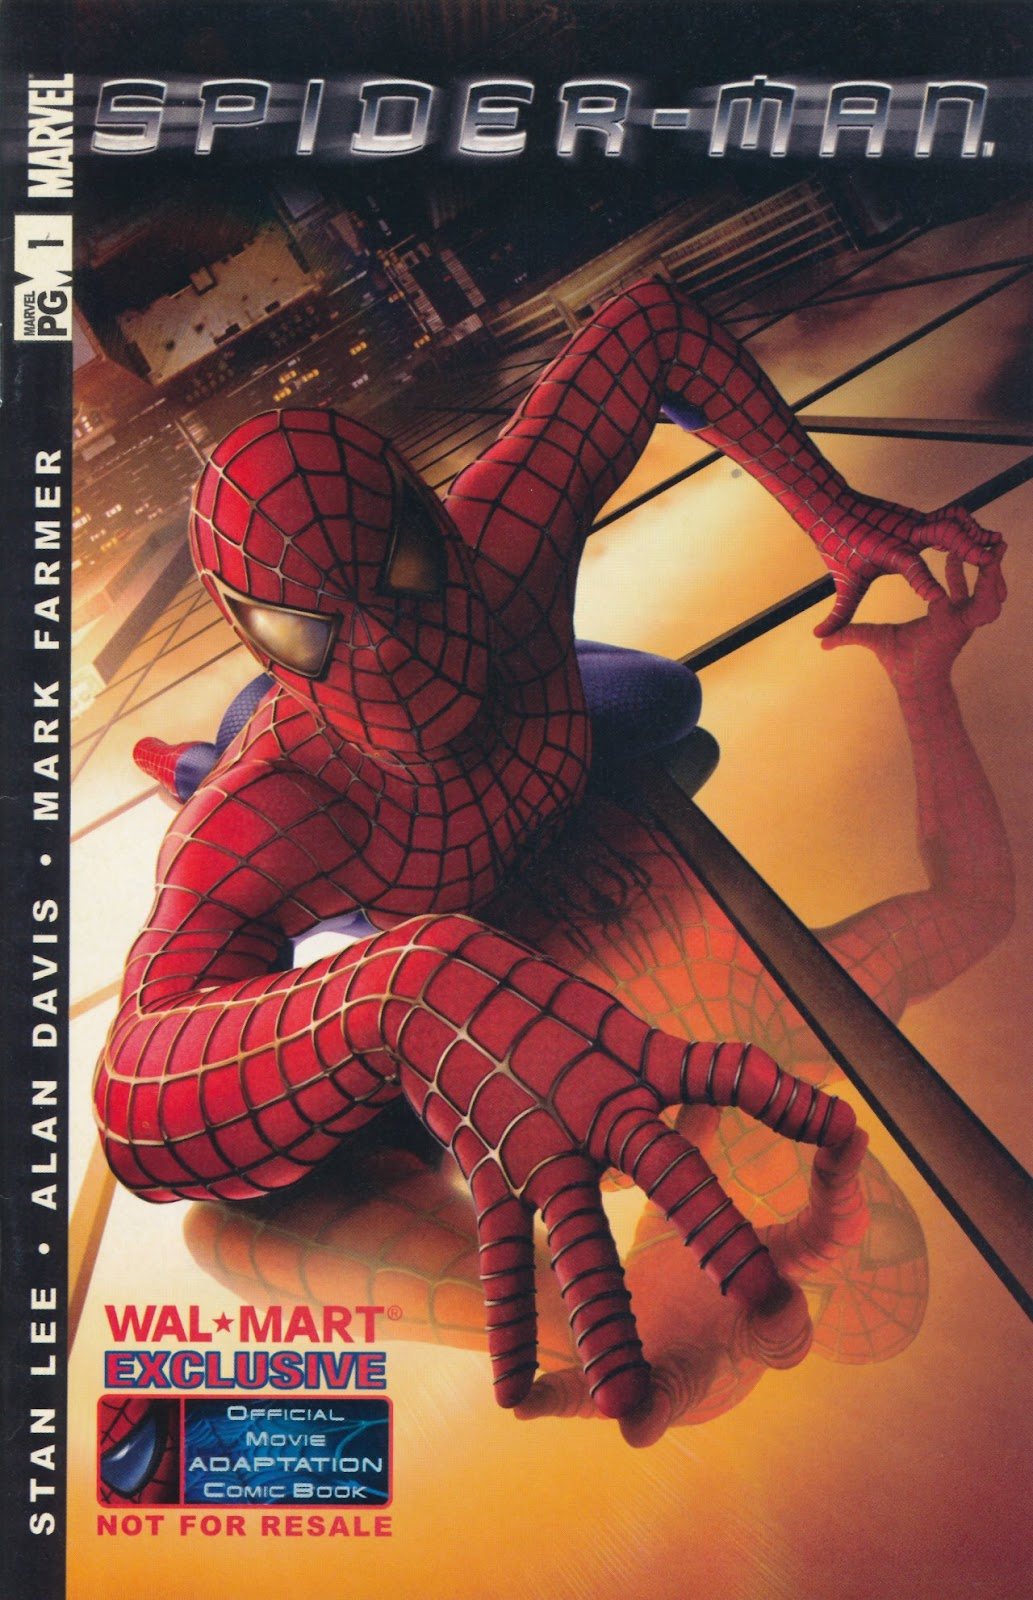 Spider-Man: The Official Movie Adaptation Full Page 1